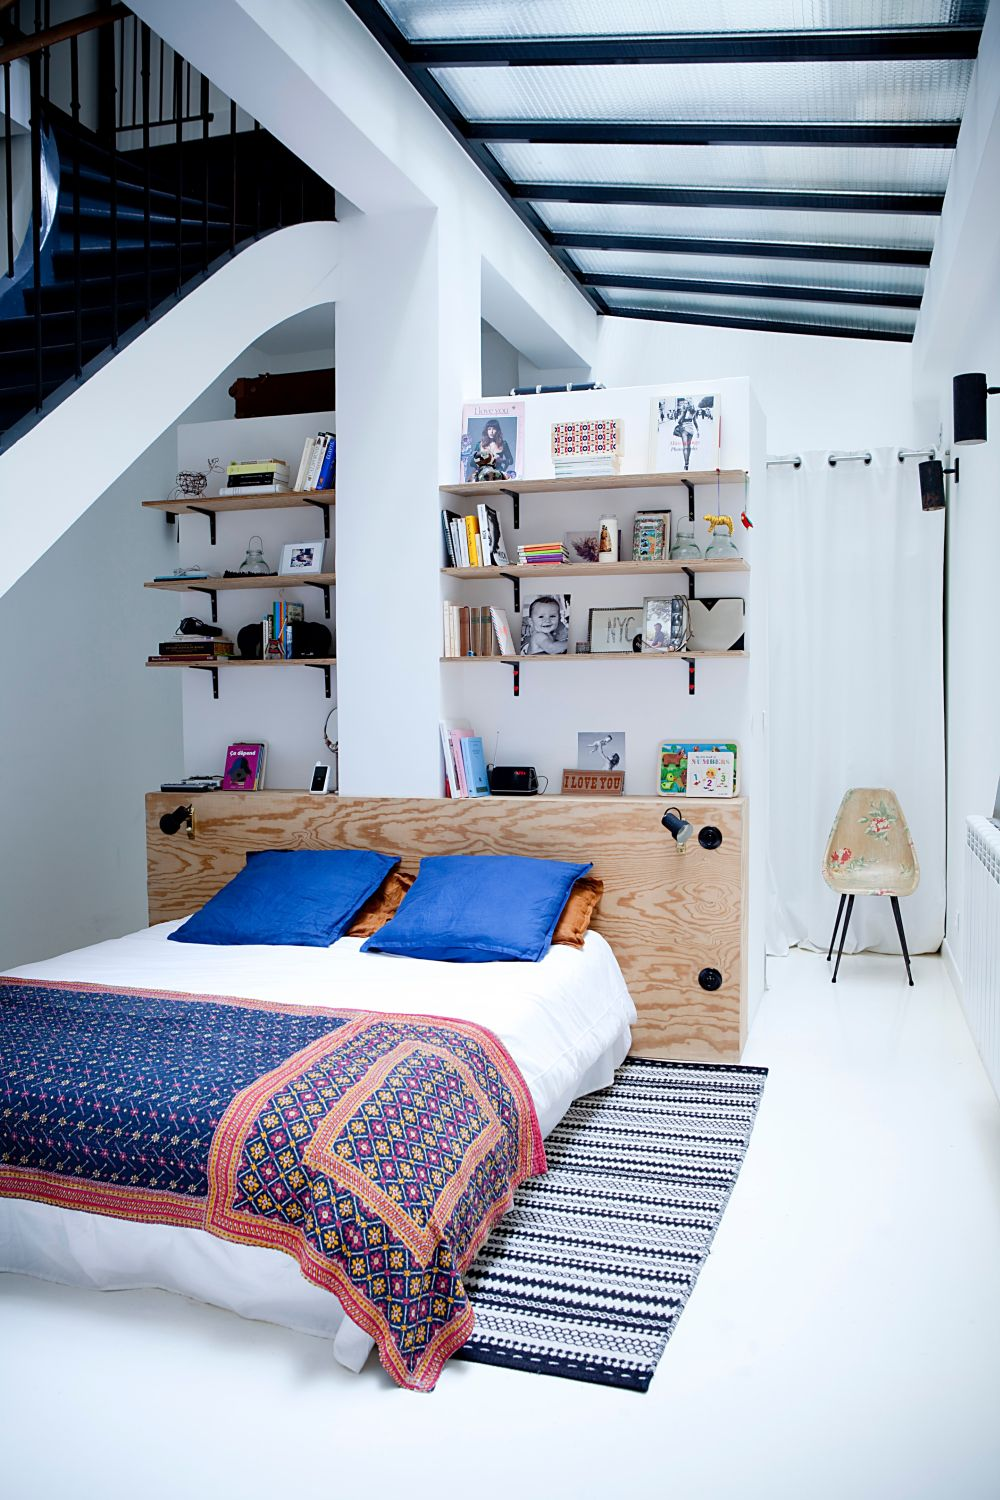 1561625248 532 modern bedroom shelves that really bring the room together - Modern Bedroom Shelves That Really Bring The Room Together